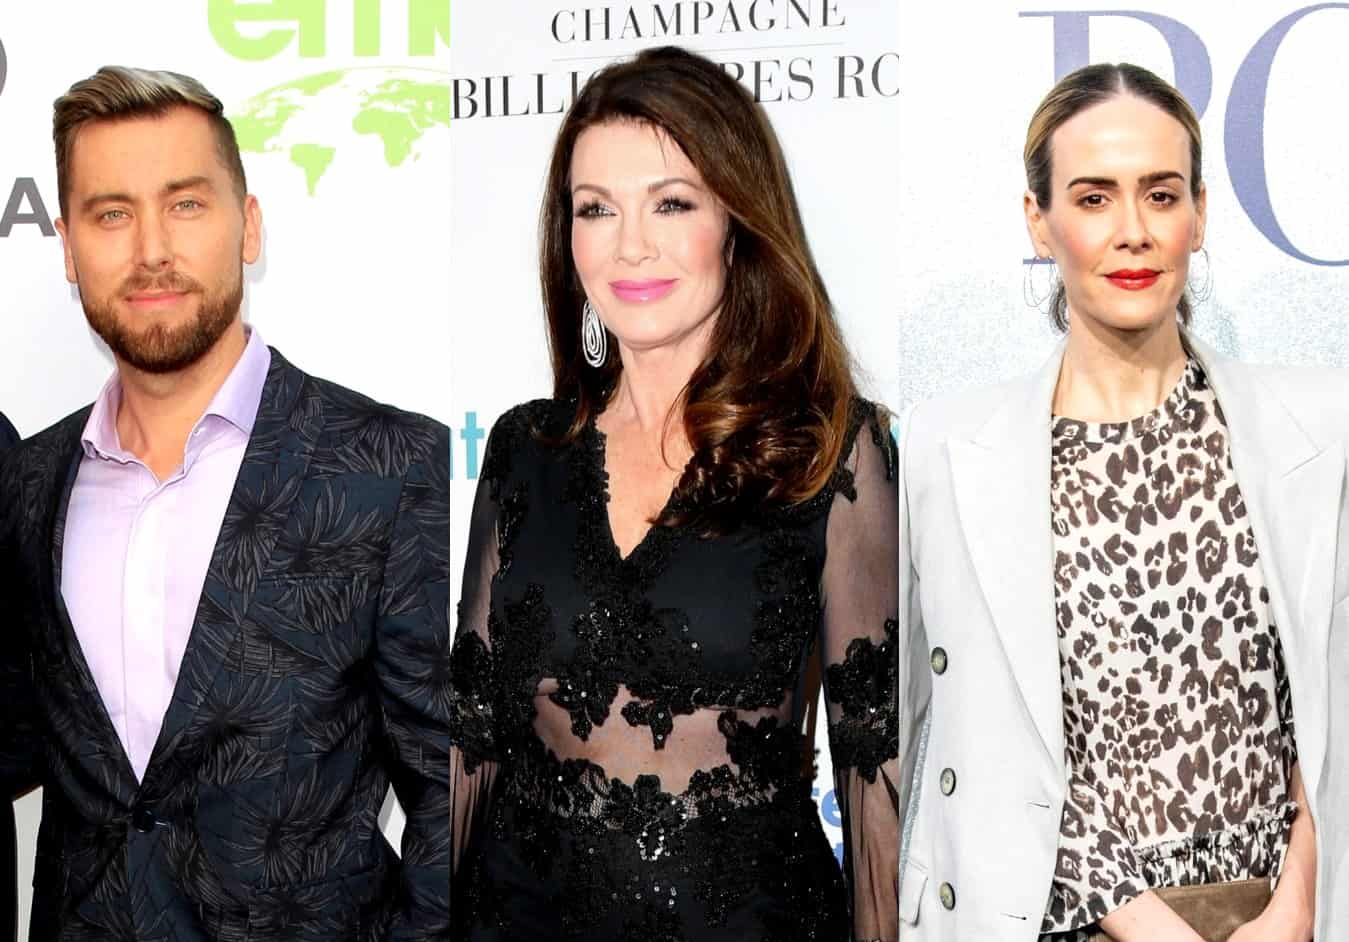 Lance Bass Believes Lisa Vanderpump 'Probably' Snubbed Sarah Paulson, Explains Why the Ex-RHOBH Star May Not Have Been 'Very Nice' to the Actress